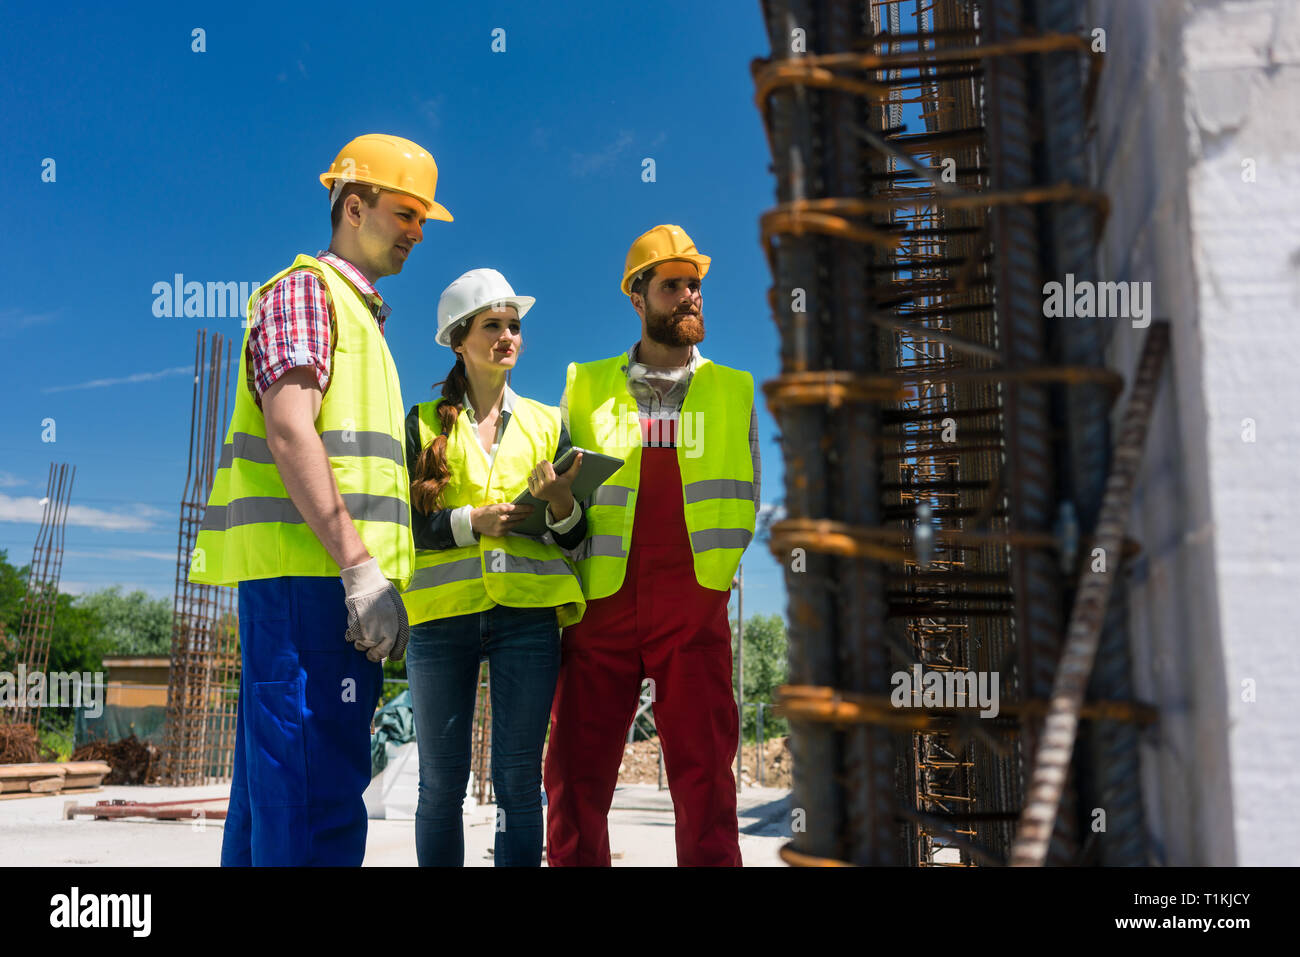 Architect supervising work on the construction site of a building - Stock Image